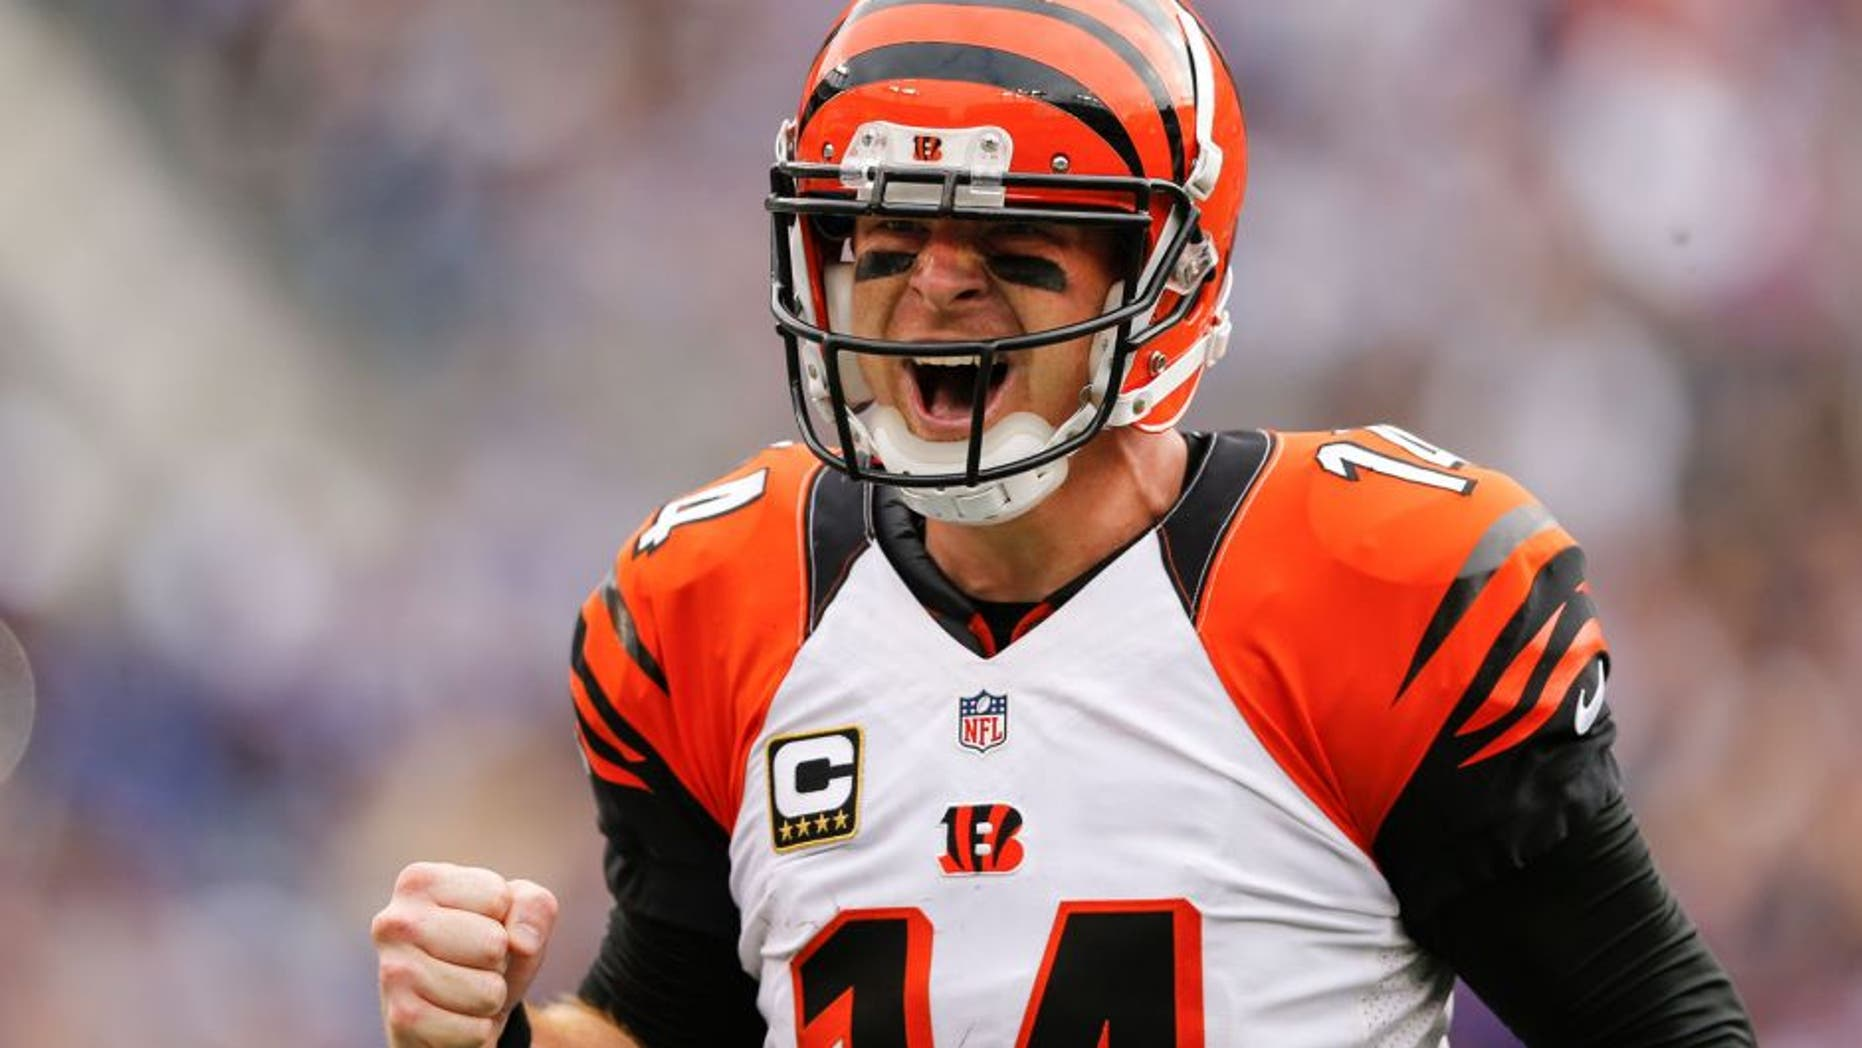 Cincinnati Bengals quarterback Andy Dalton (14) celebrates wide receiver A.J. Green's touchdown during the second half of an NFL football game against the Baltimore Ravens in Baltimore, Sunday, Sept. 27, 2015. The Bengals defeated the Ravens 28-24. (AP Photo/Patrick Semansky)